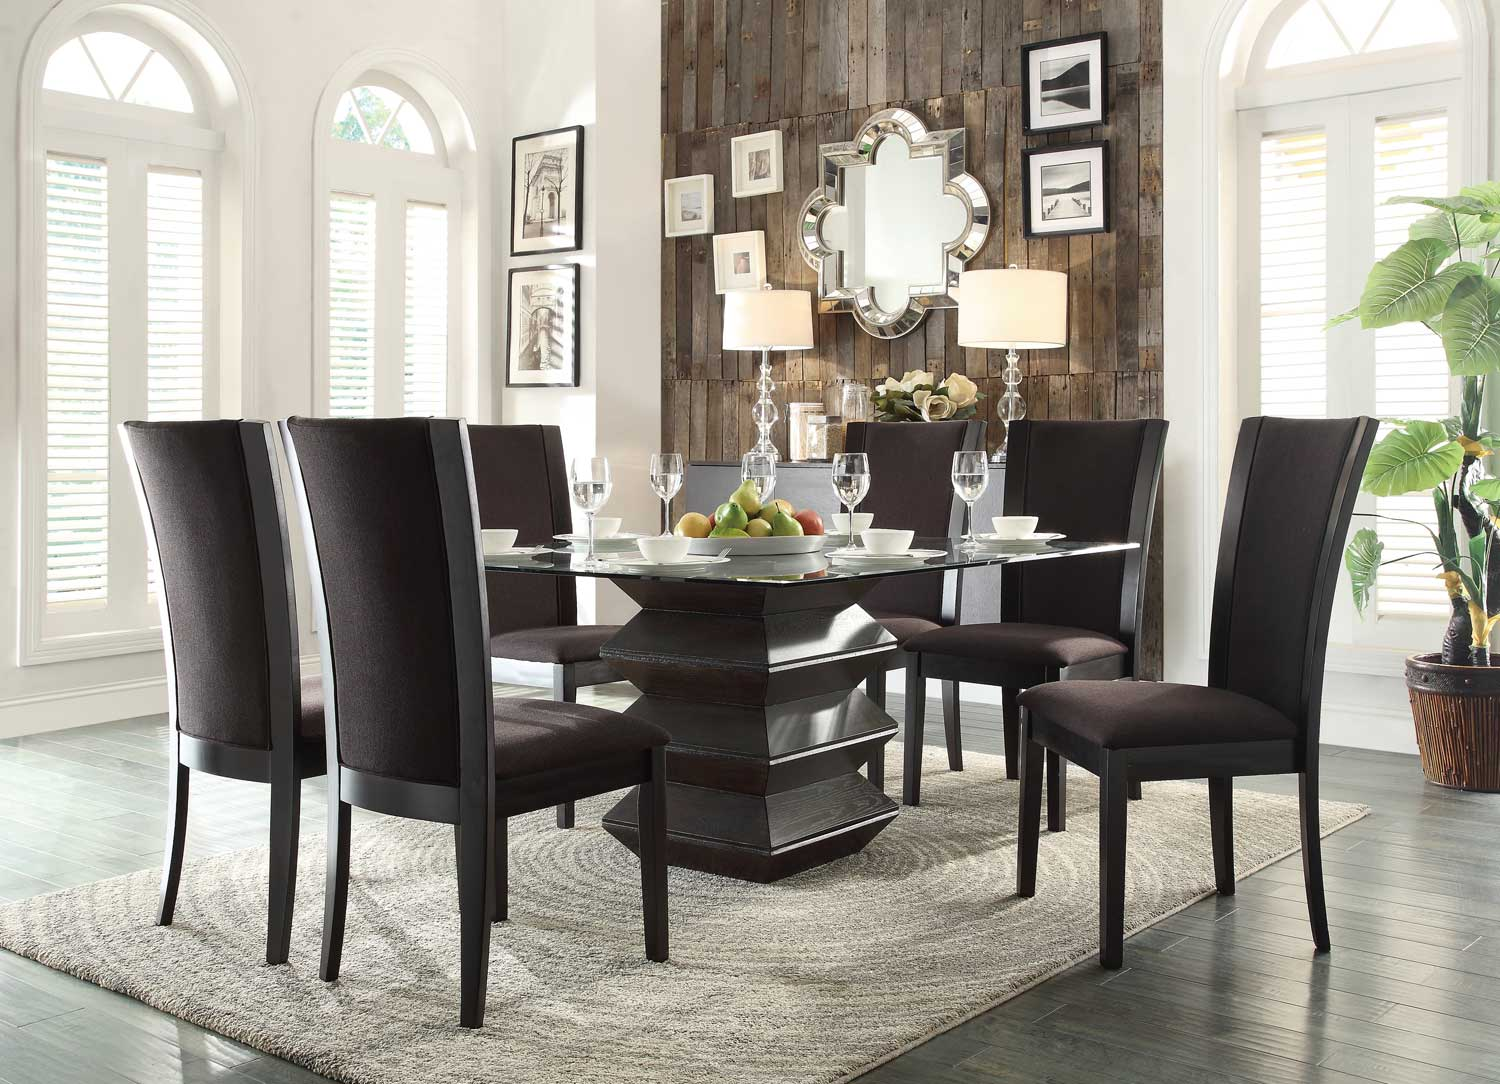 Homelegance Havre Dining Set - Dark Brown Fabric Chairs